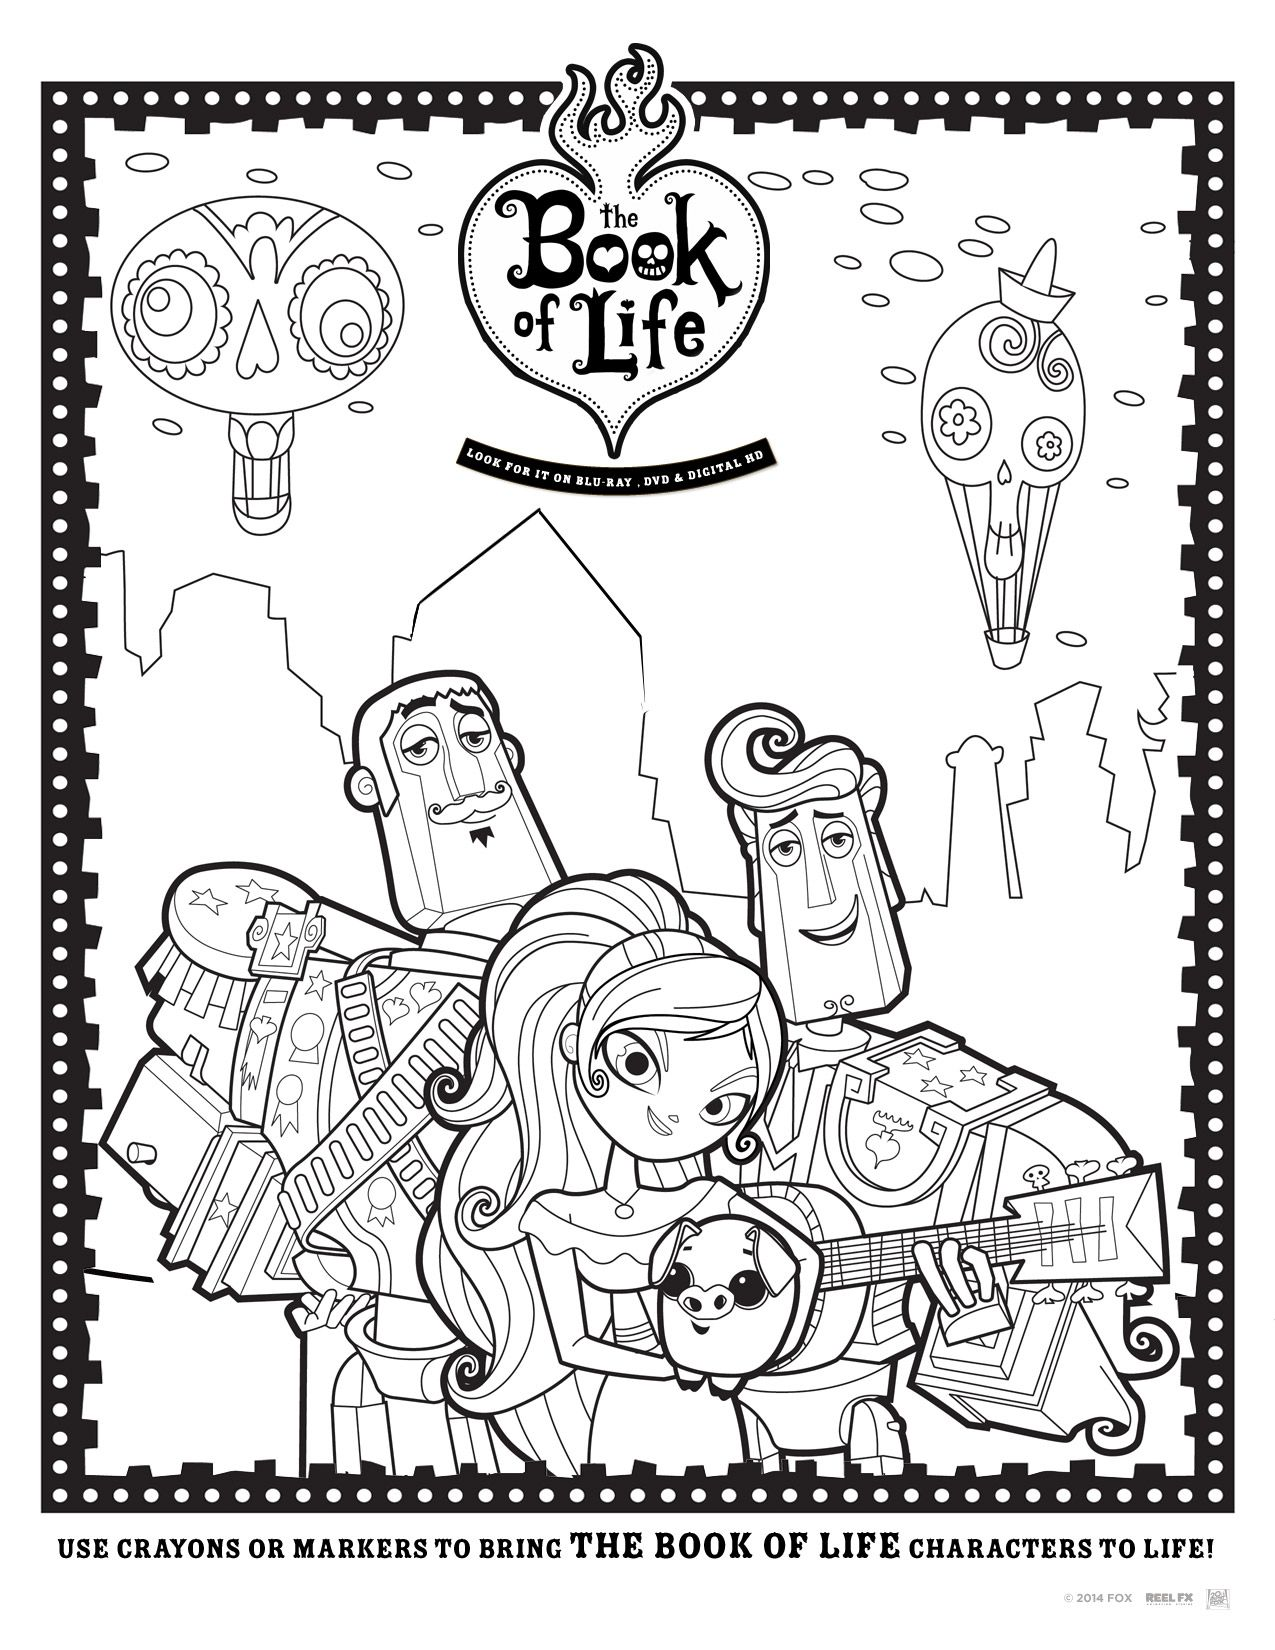 Family Movie Night with The Book of Life Movie | KIDS | Pinterest ...